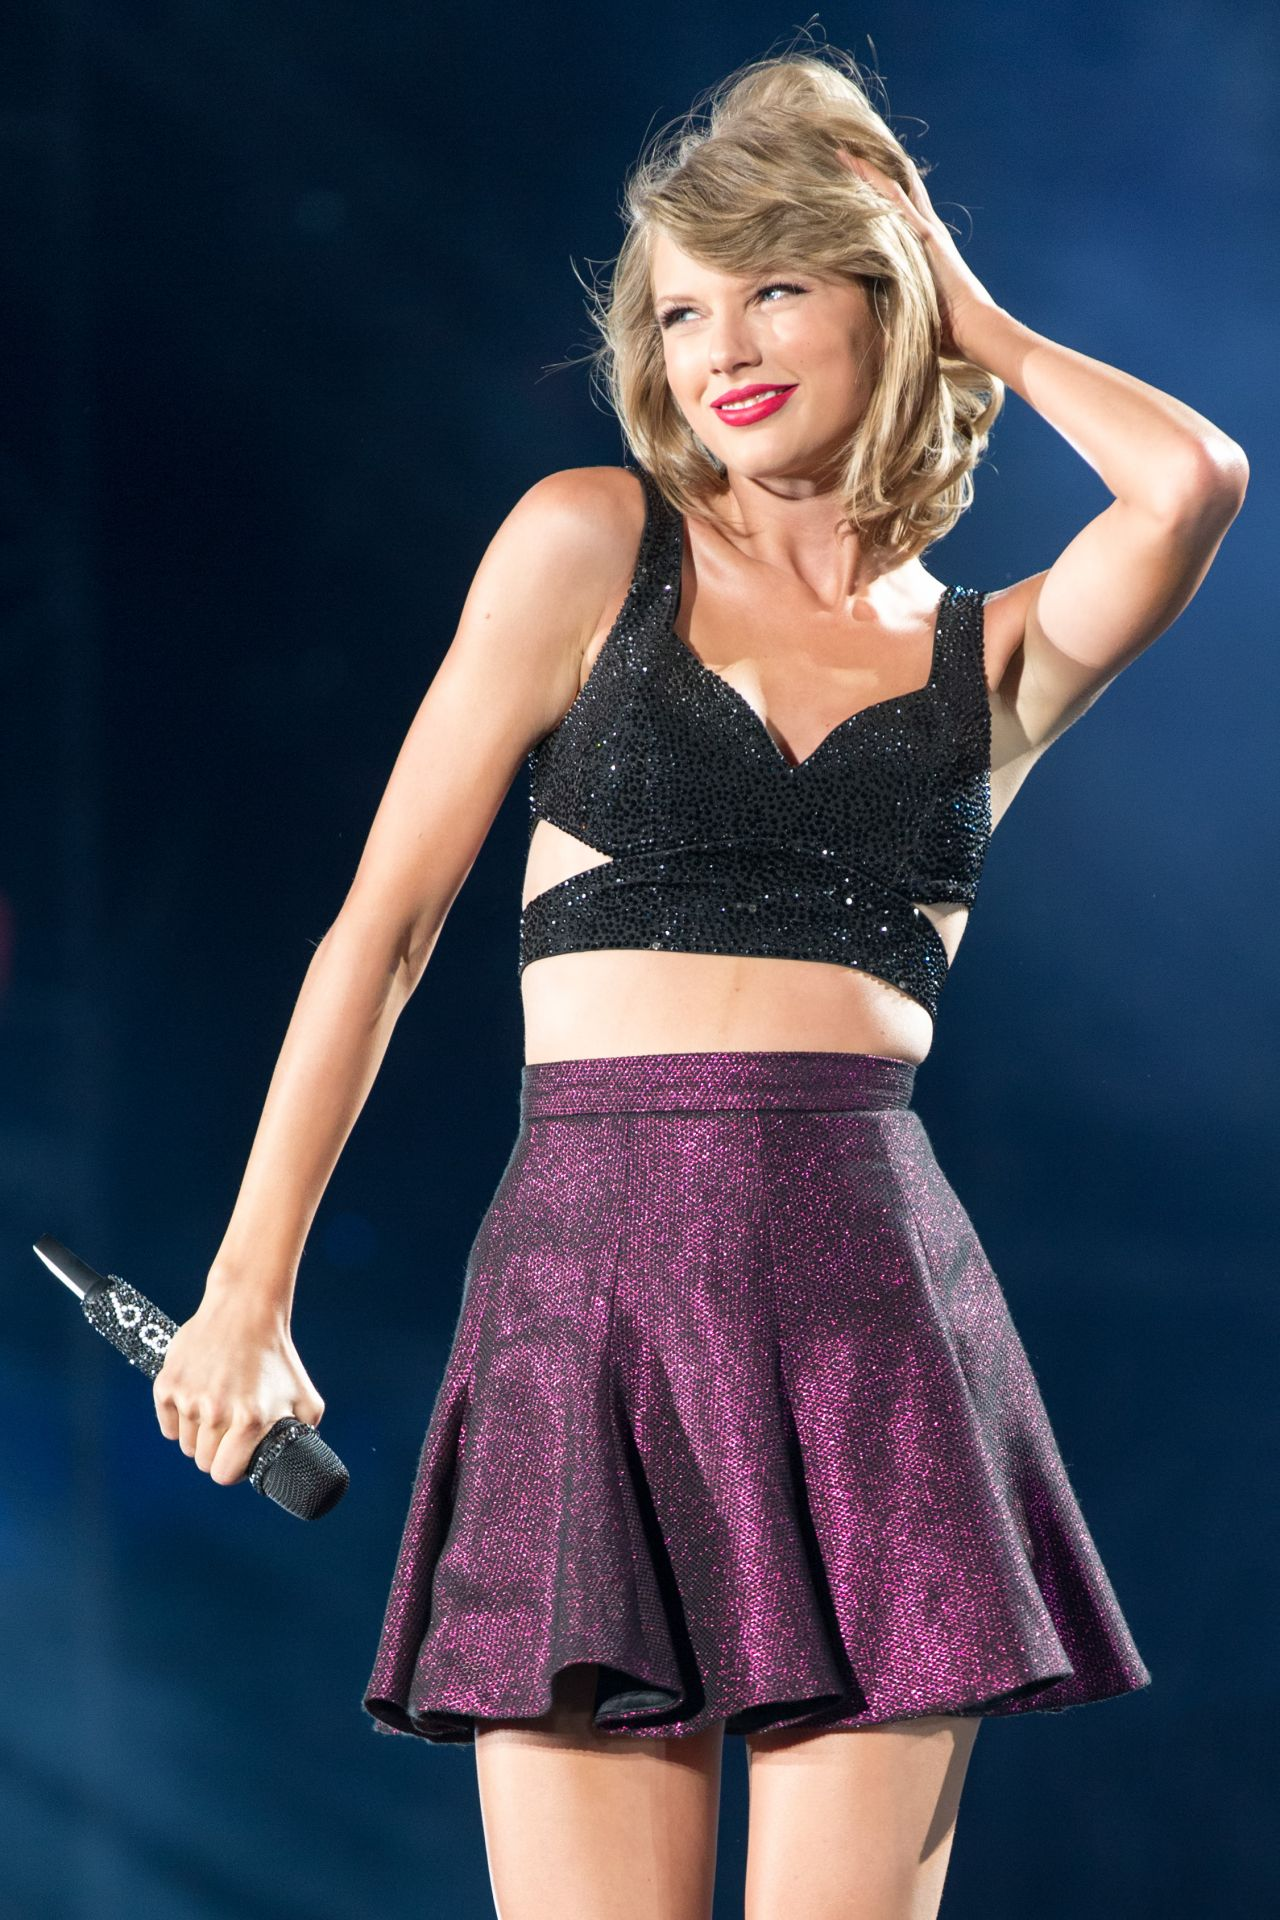 Taylor Swift 1989 World Tour Chicago July 2015